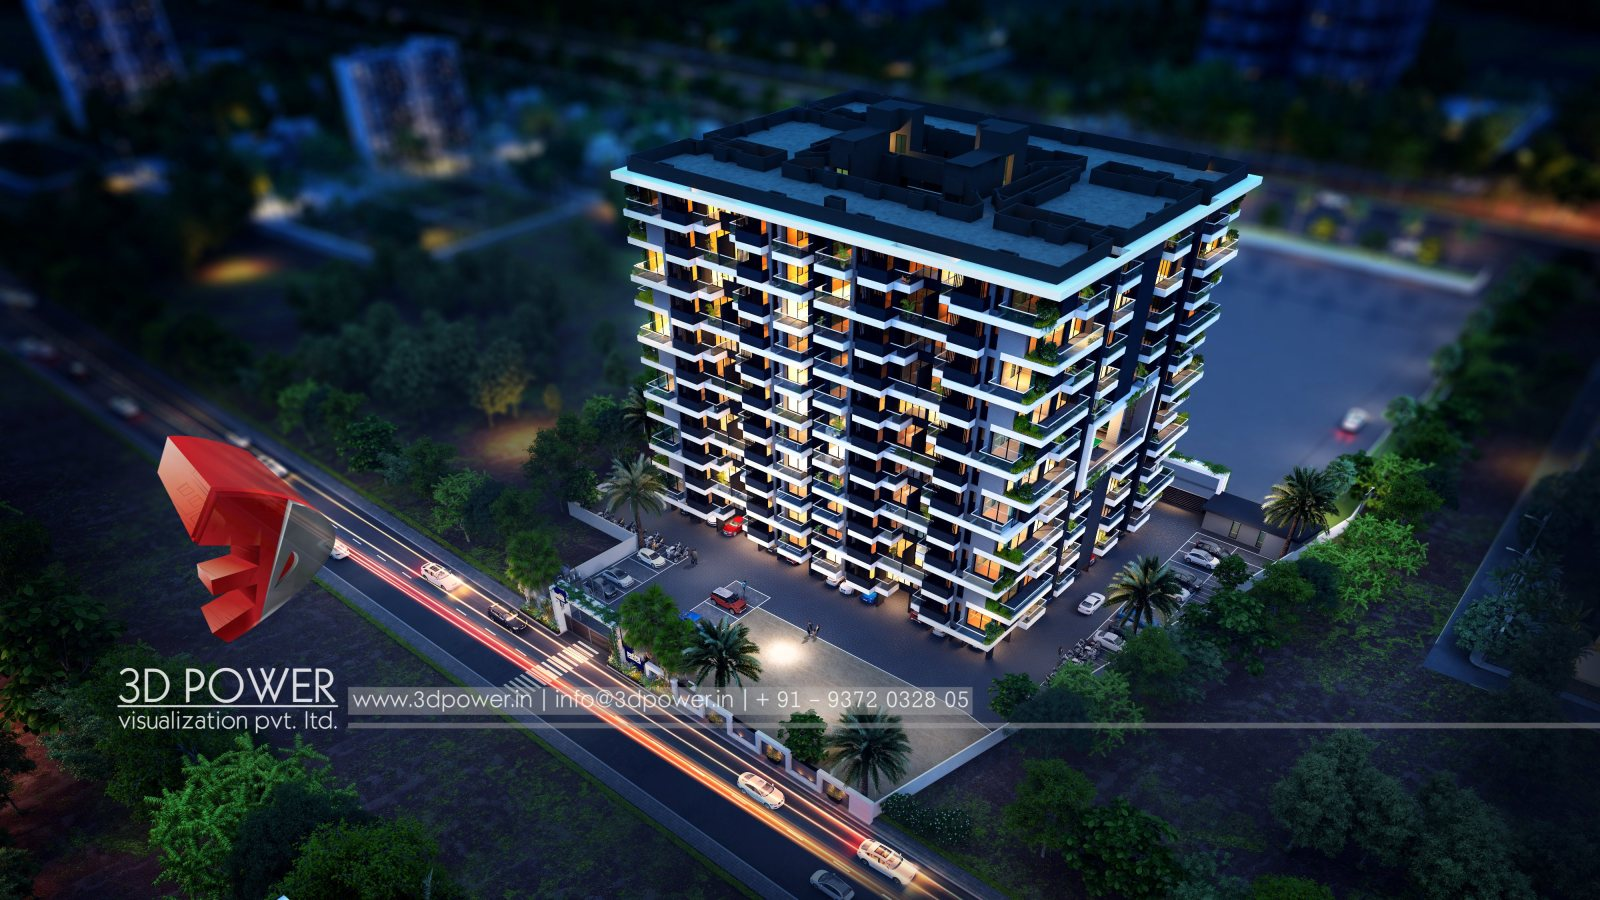 architectural-3drendering-architectural-design-apartment-night-view-birds-eye-view